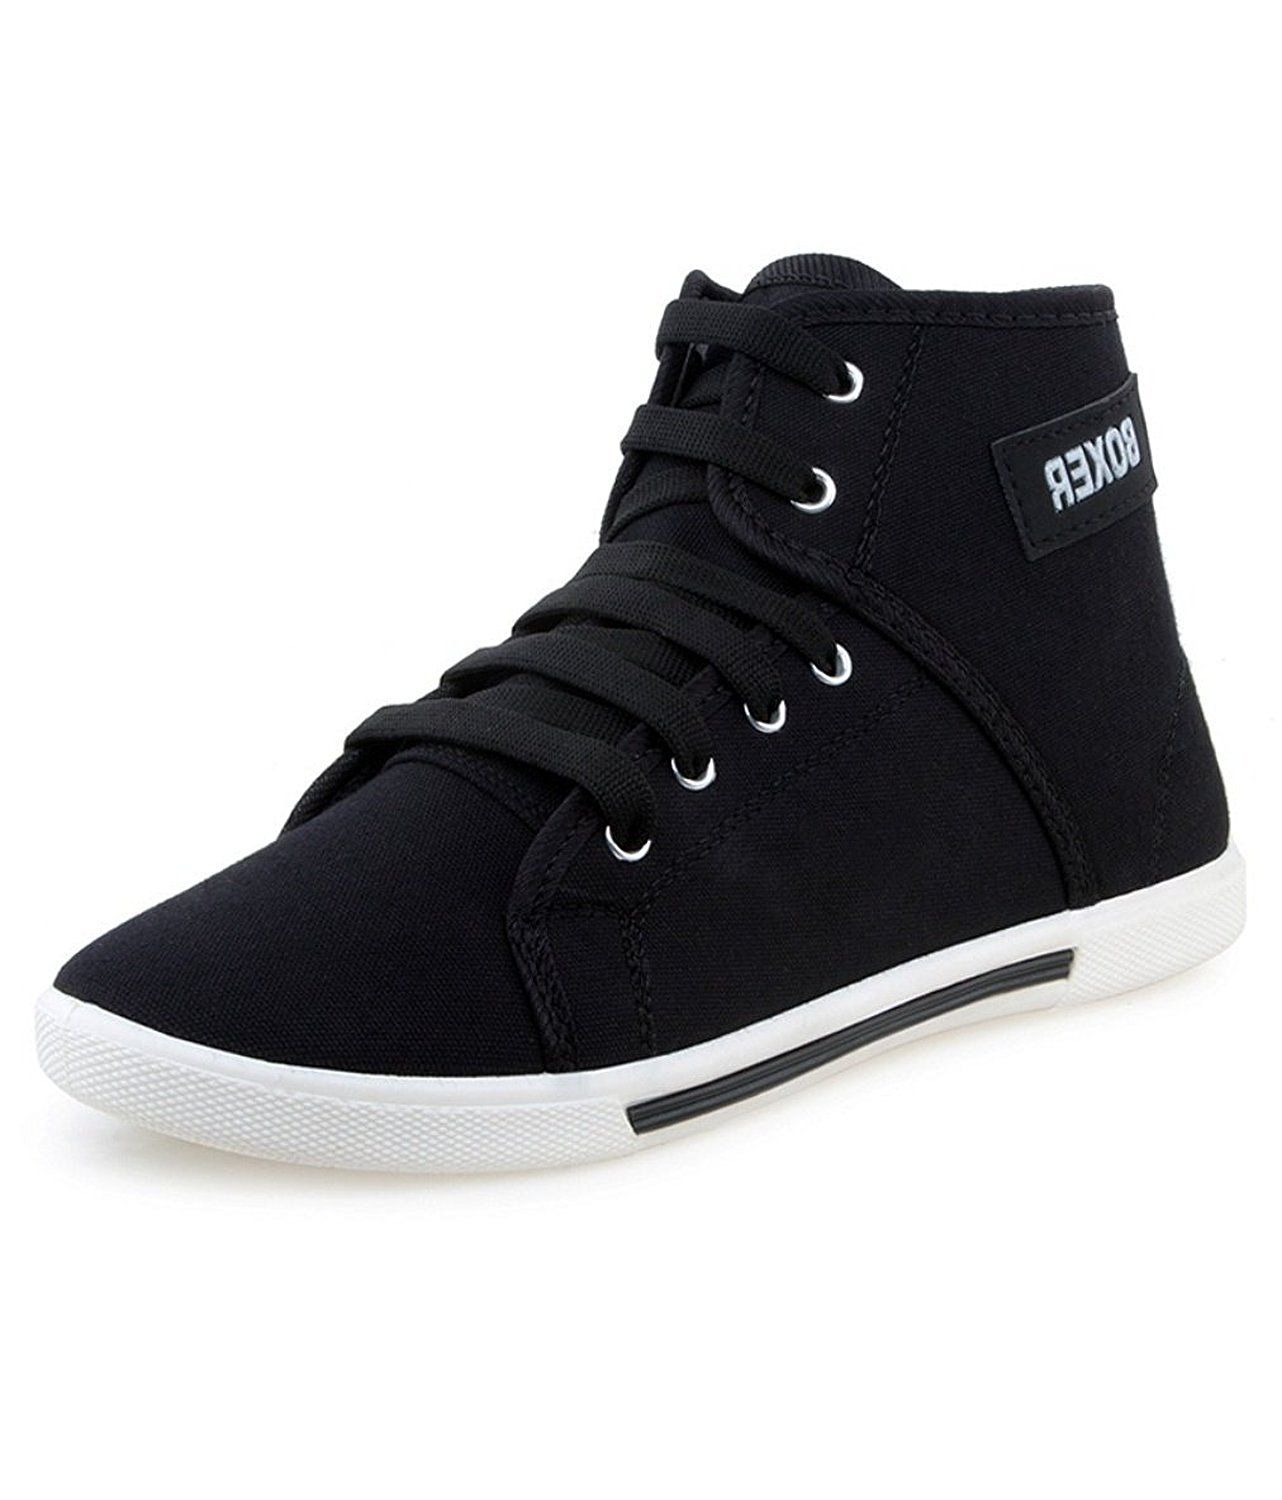 d7707e4a4ee Chevit Men s Black Casual Sports Sneaker Shoes  Buy Online at Low Prices in  India - Amazon.in